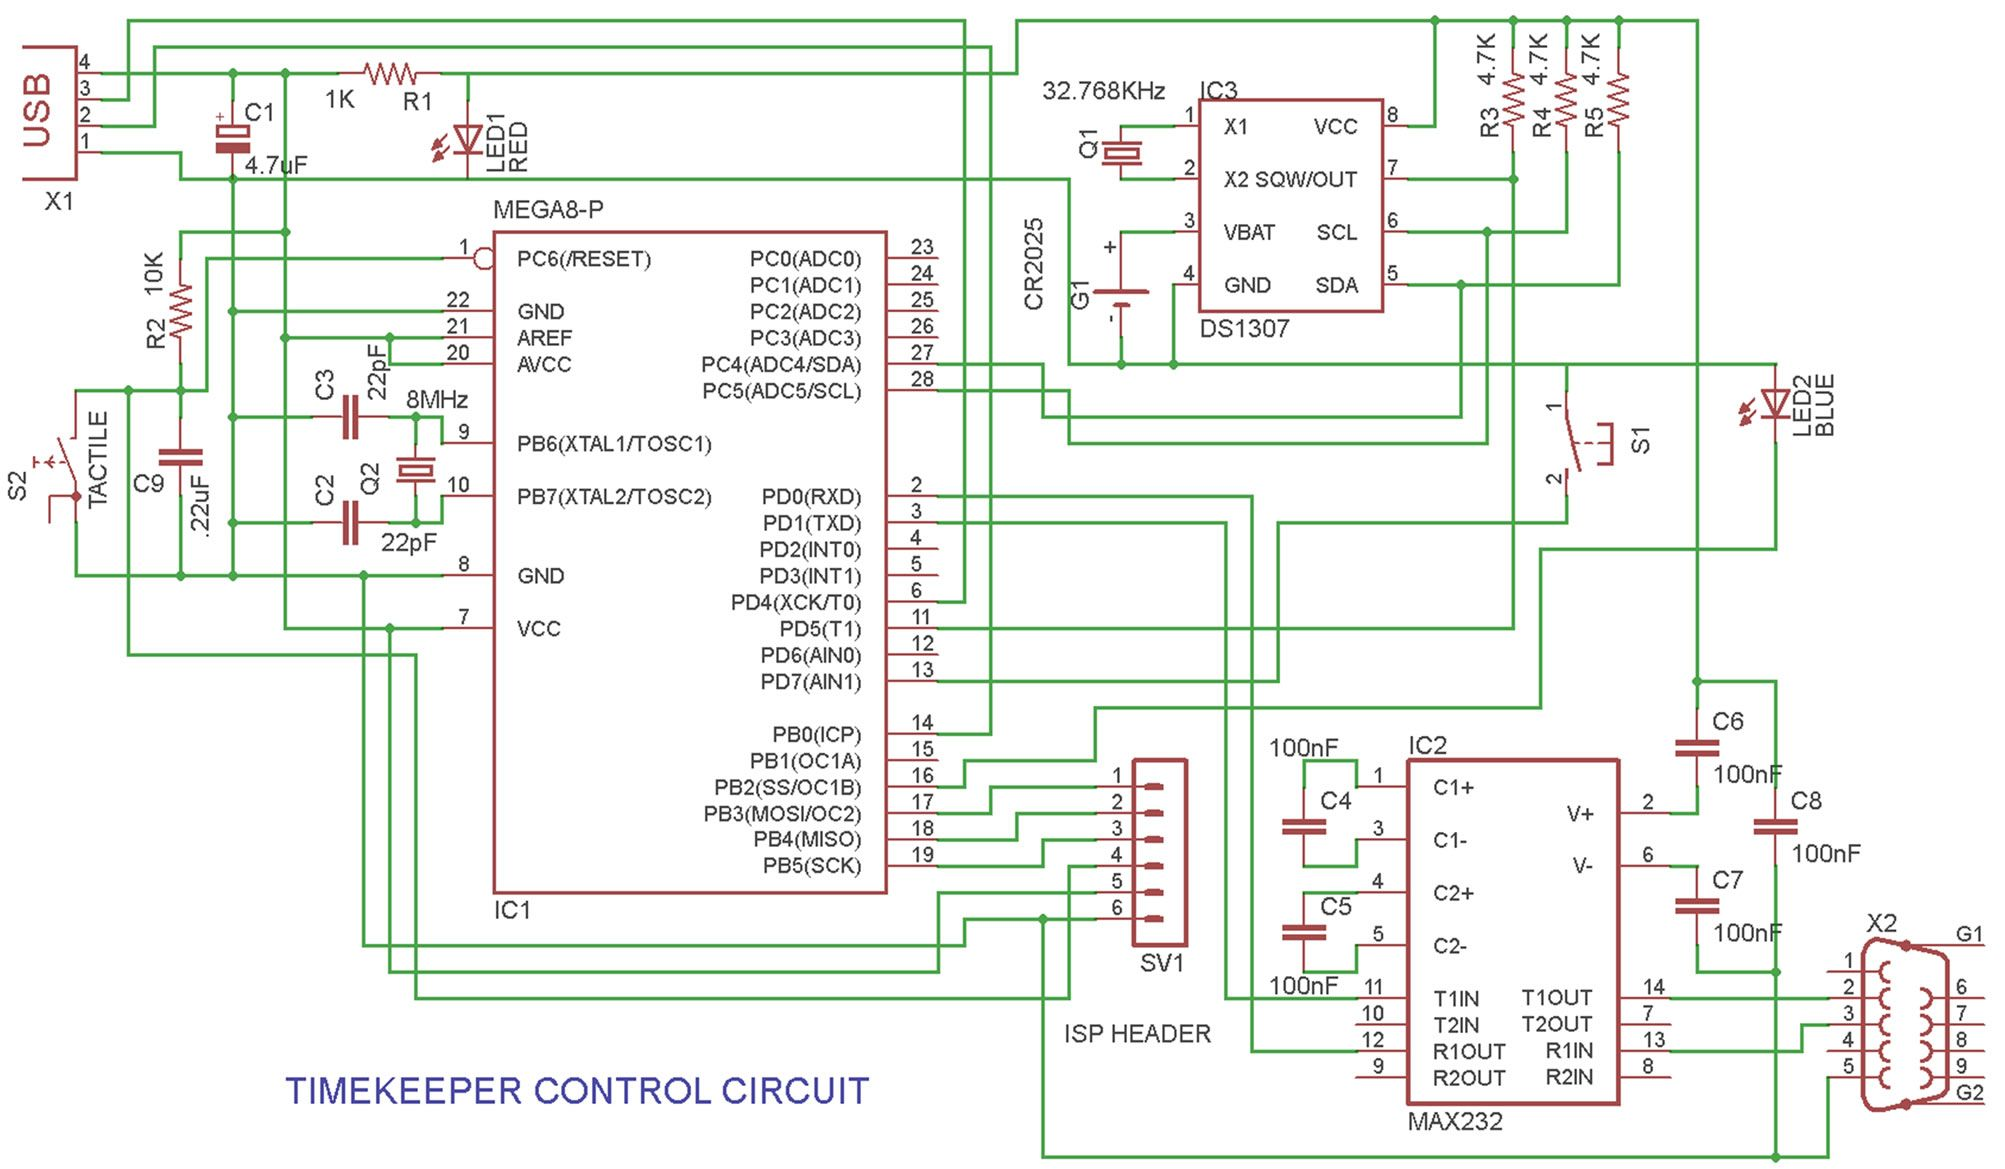 Microcontroller Based Project On Automatic School Bell Timer Diy Heartbeat Sensor Circuit Timekeepercontrol Which Minimize Human Efforts With A Precise